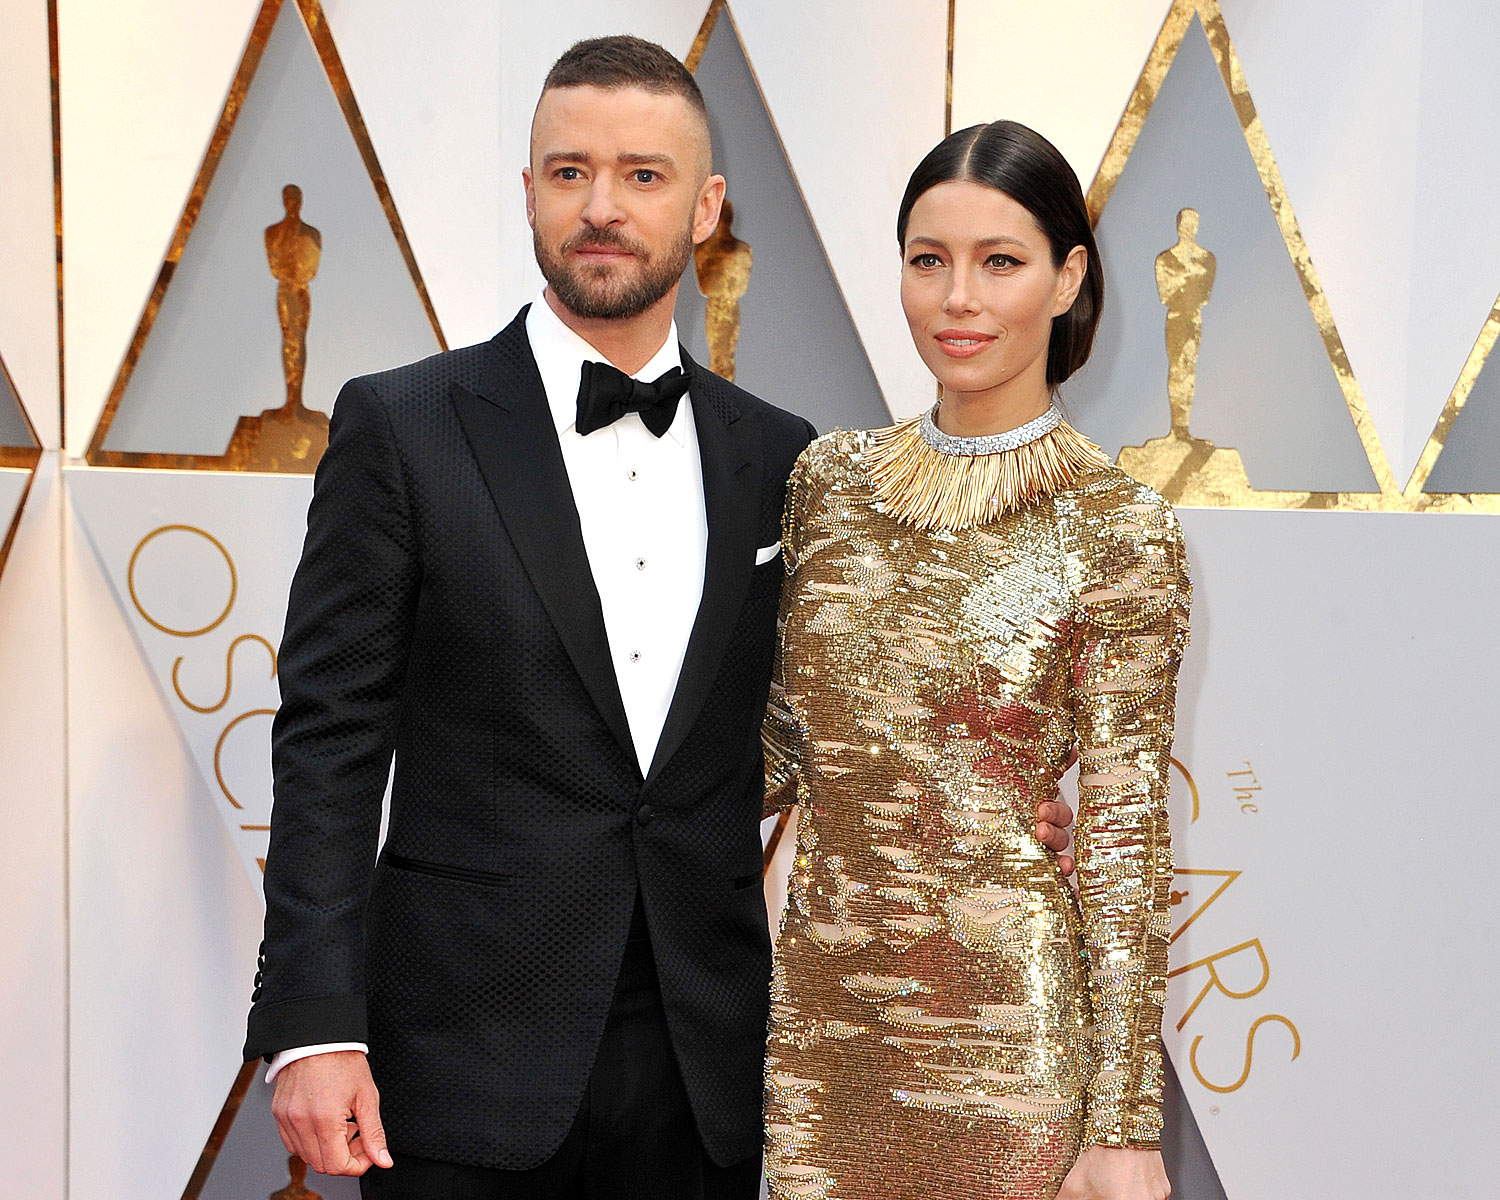 Justin Timberlake Wedding.Read Justin Timberlake S Sweet Mother S Day Note For Jessica Biel